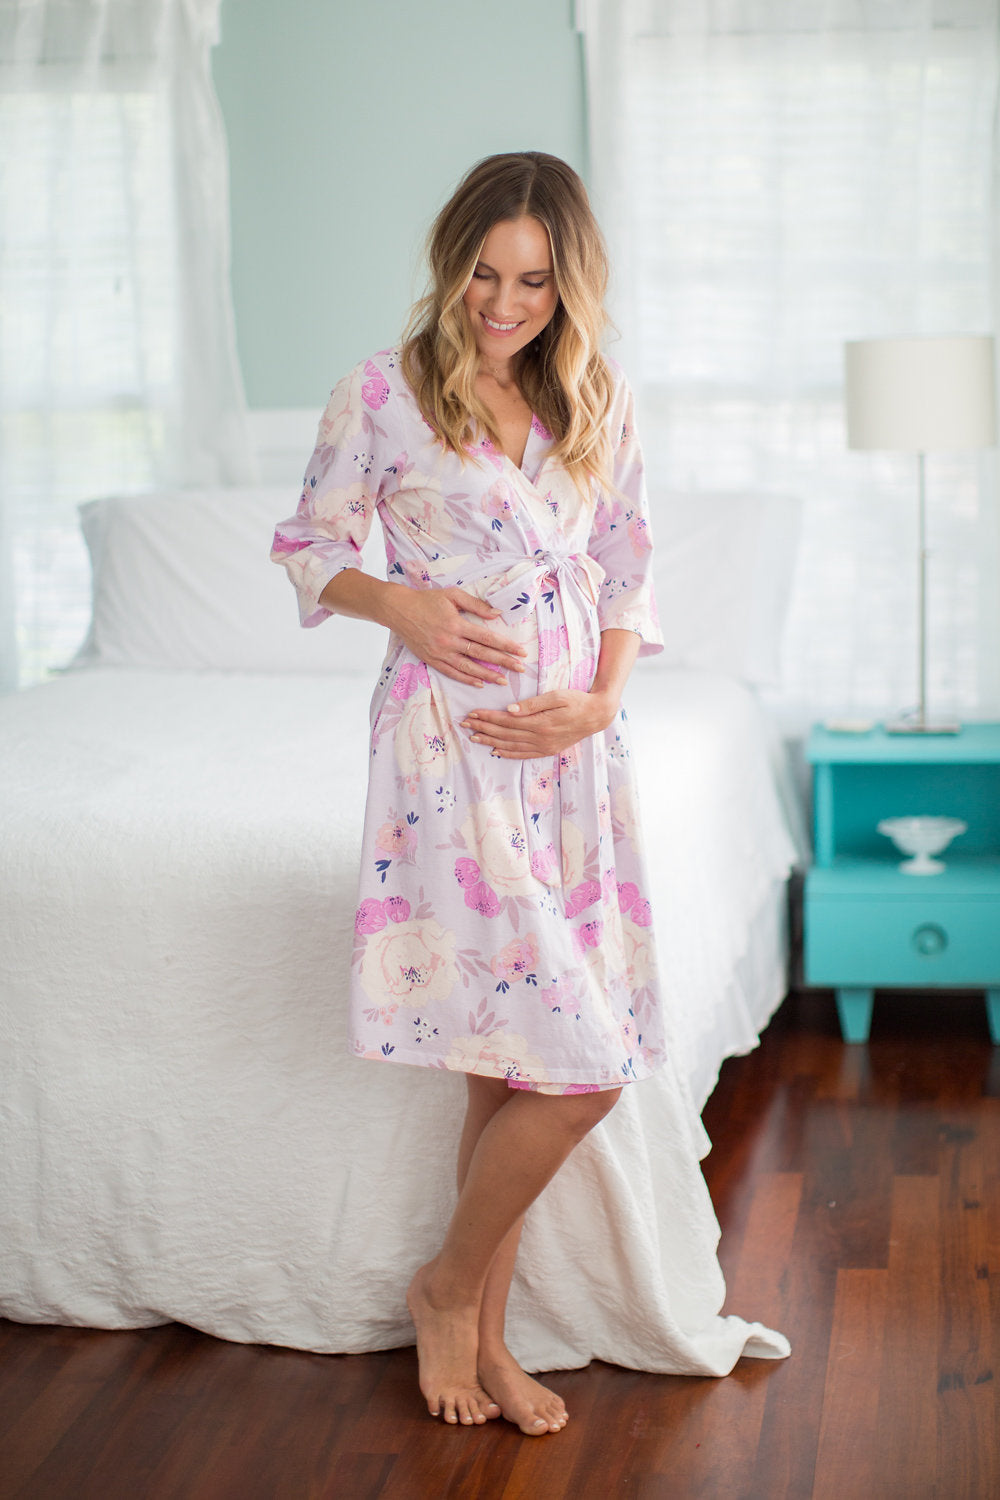 Anais purple and pink printed robe. Match with daughter for spa day with mom. Anais is a dainty, purple and pink flowered print.